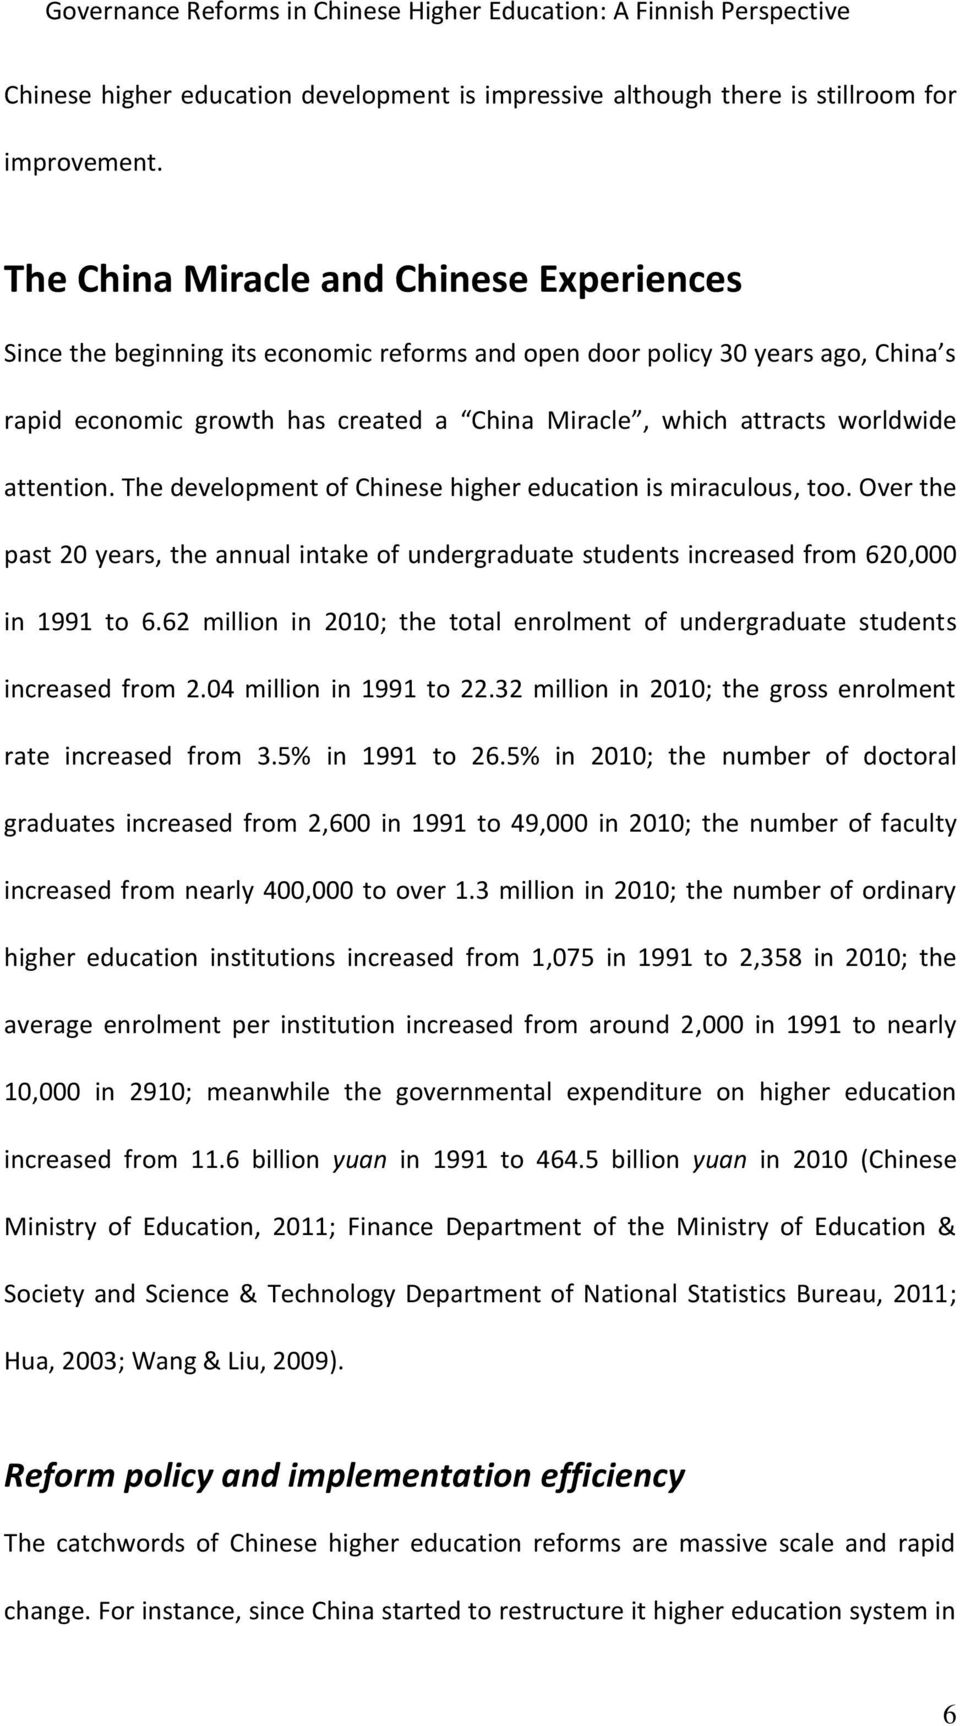 worldwide attention. The development of Chinese higher education is miraculous, too. Over the past 20 years, the annual intake of undergraduate students increased from 620,000 in 1991 to 6.